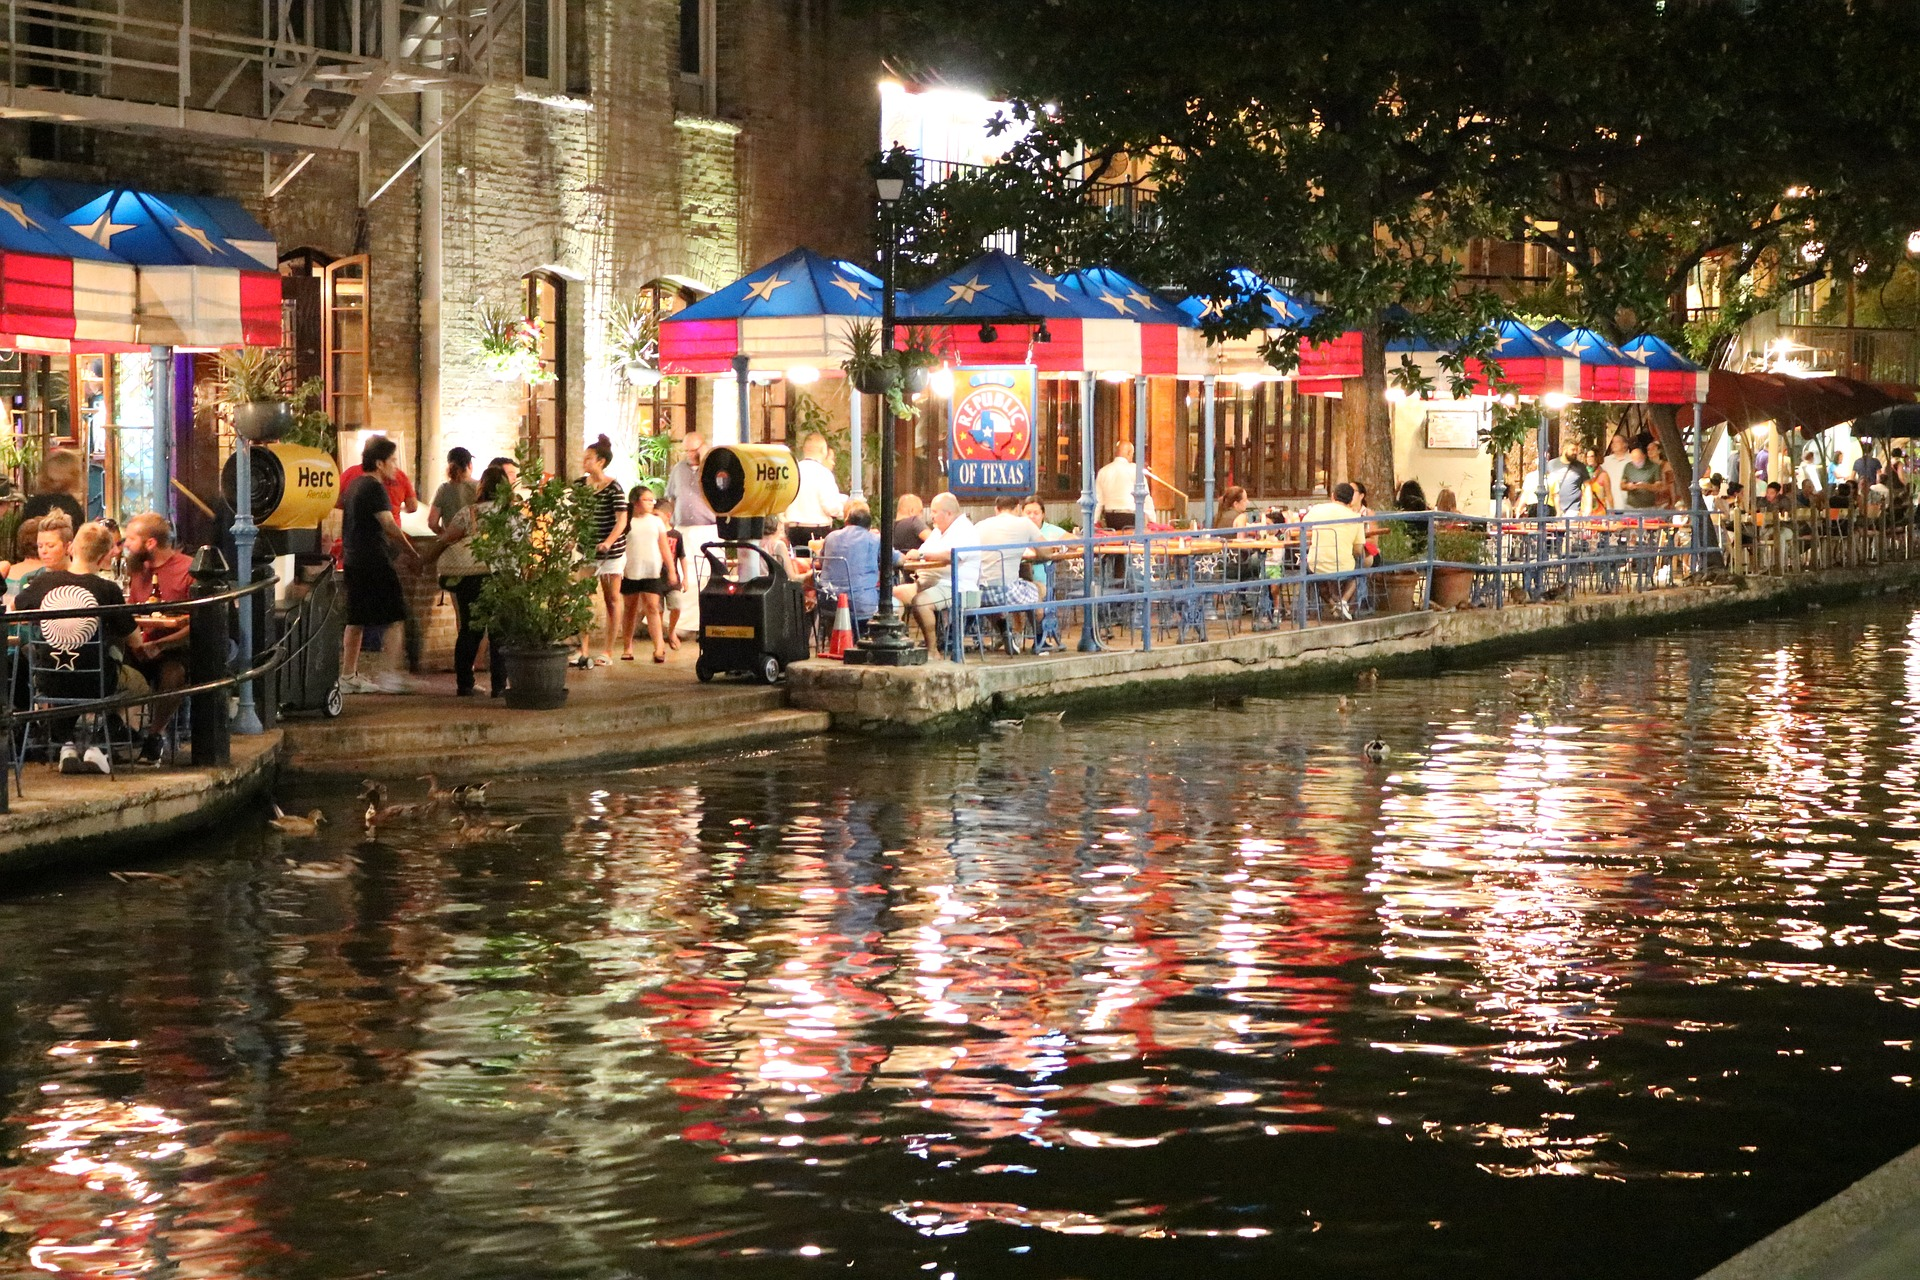 san-antonio-riverwalk-2705294_1920.jpg